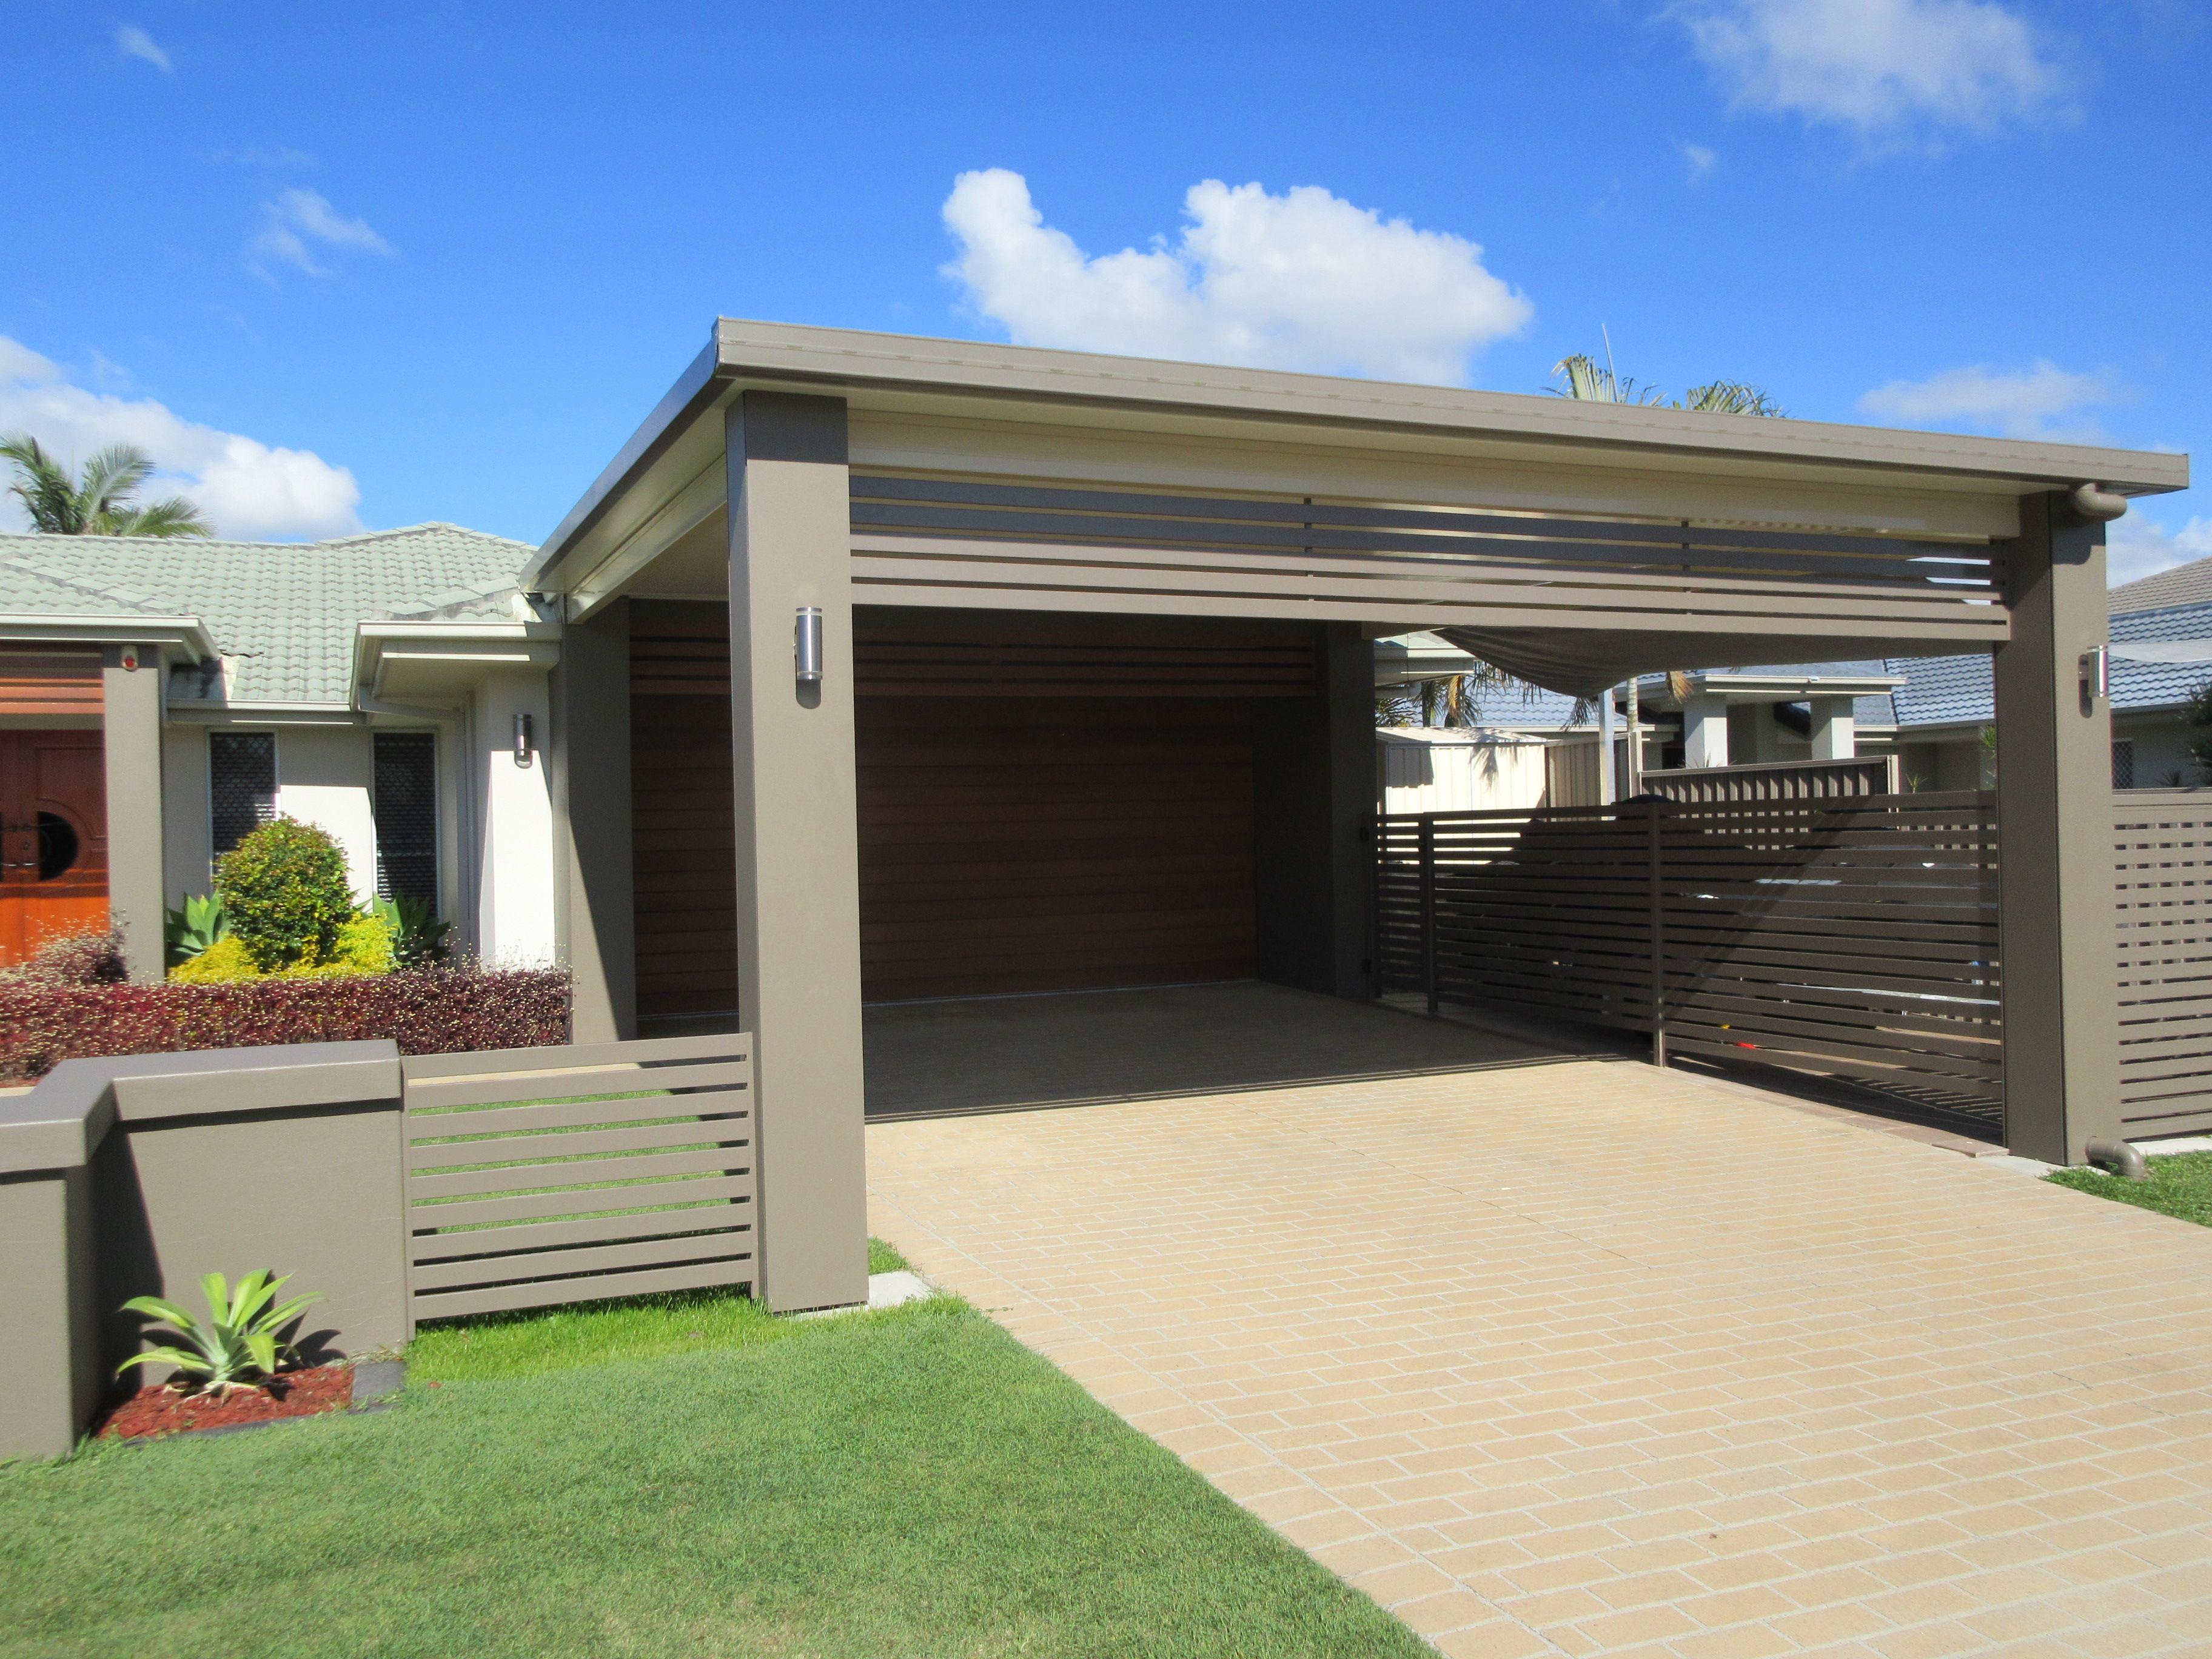 Pin by Melissa Kirchner on Home ideas Carport designs